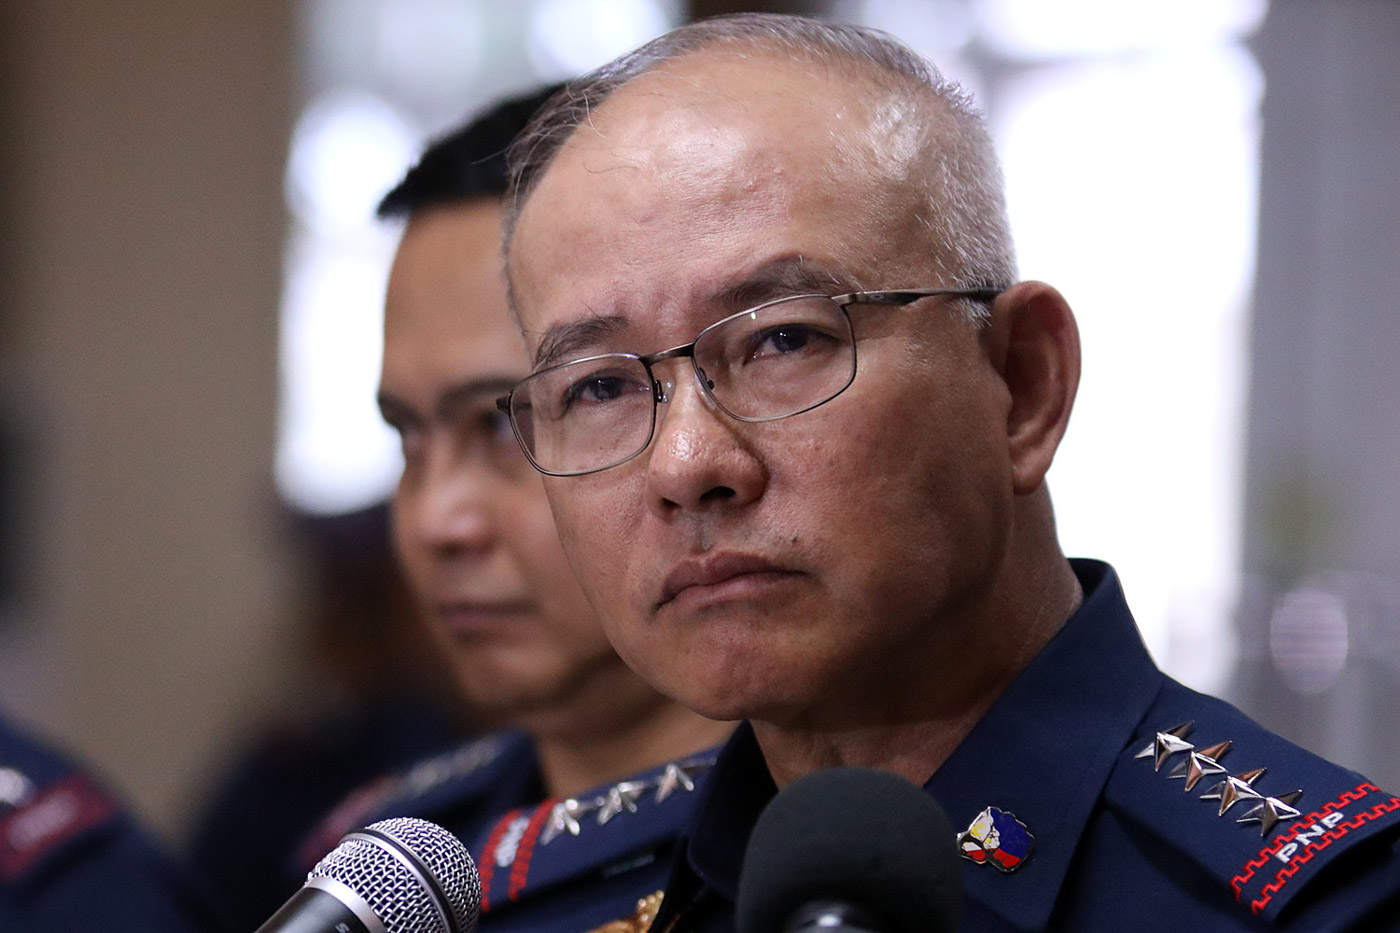 NO CONFIRMATION. PNP chief Oscar Albayalde could not immediately confirm the President's claim of an ouster plot against him. File photo by Darren Langit/Rappler